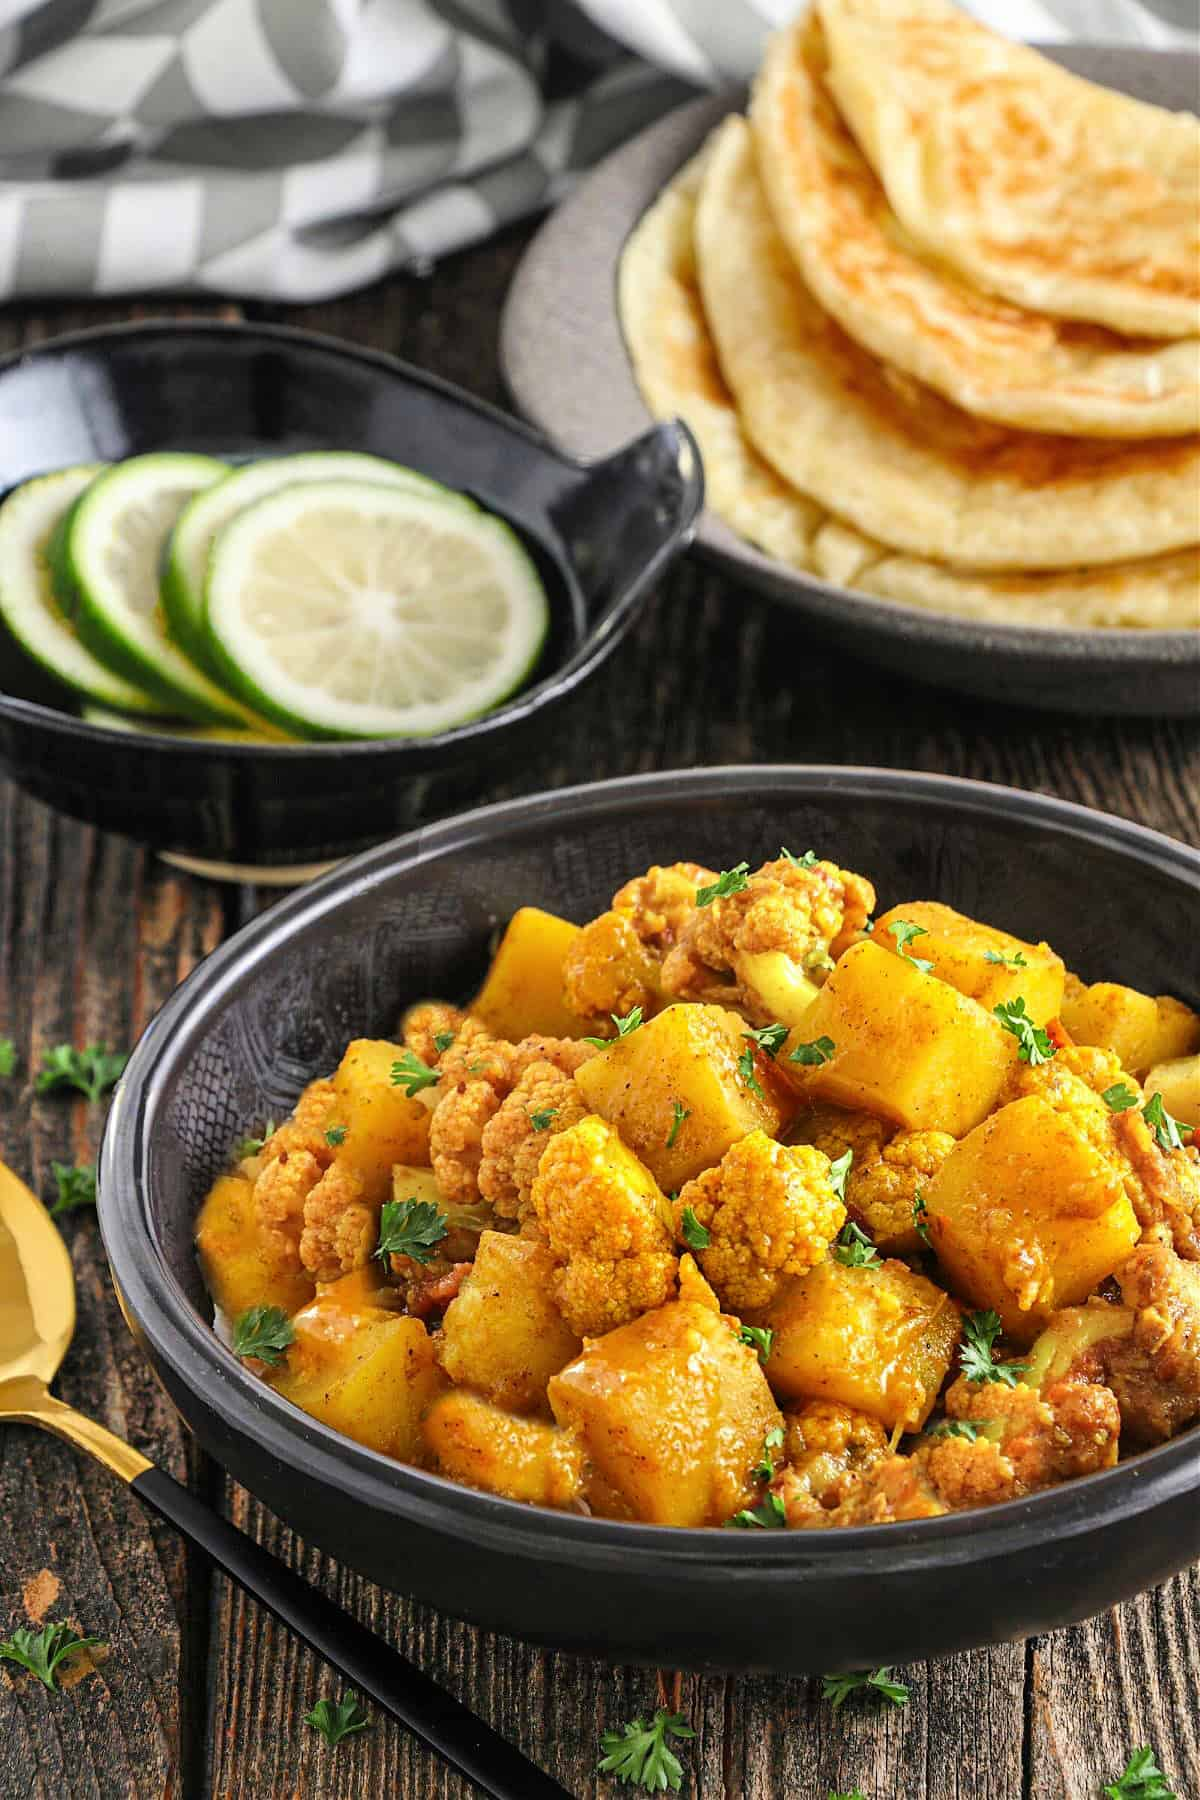 Side view of Aloo Gobi in a bowl. Naan and limes in the background.